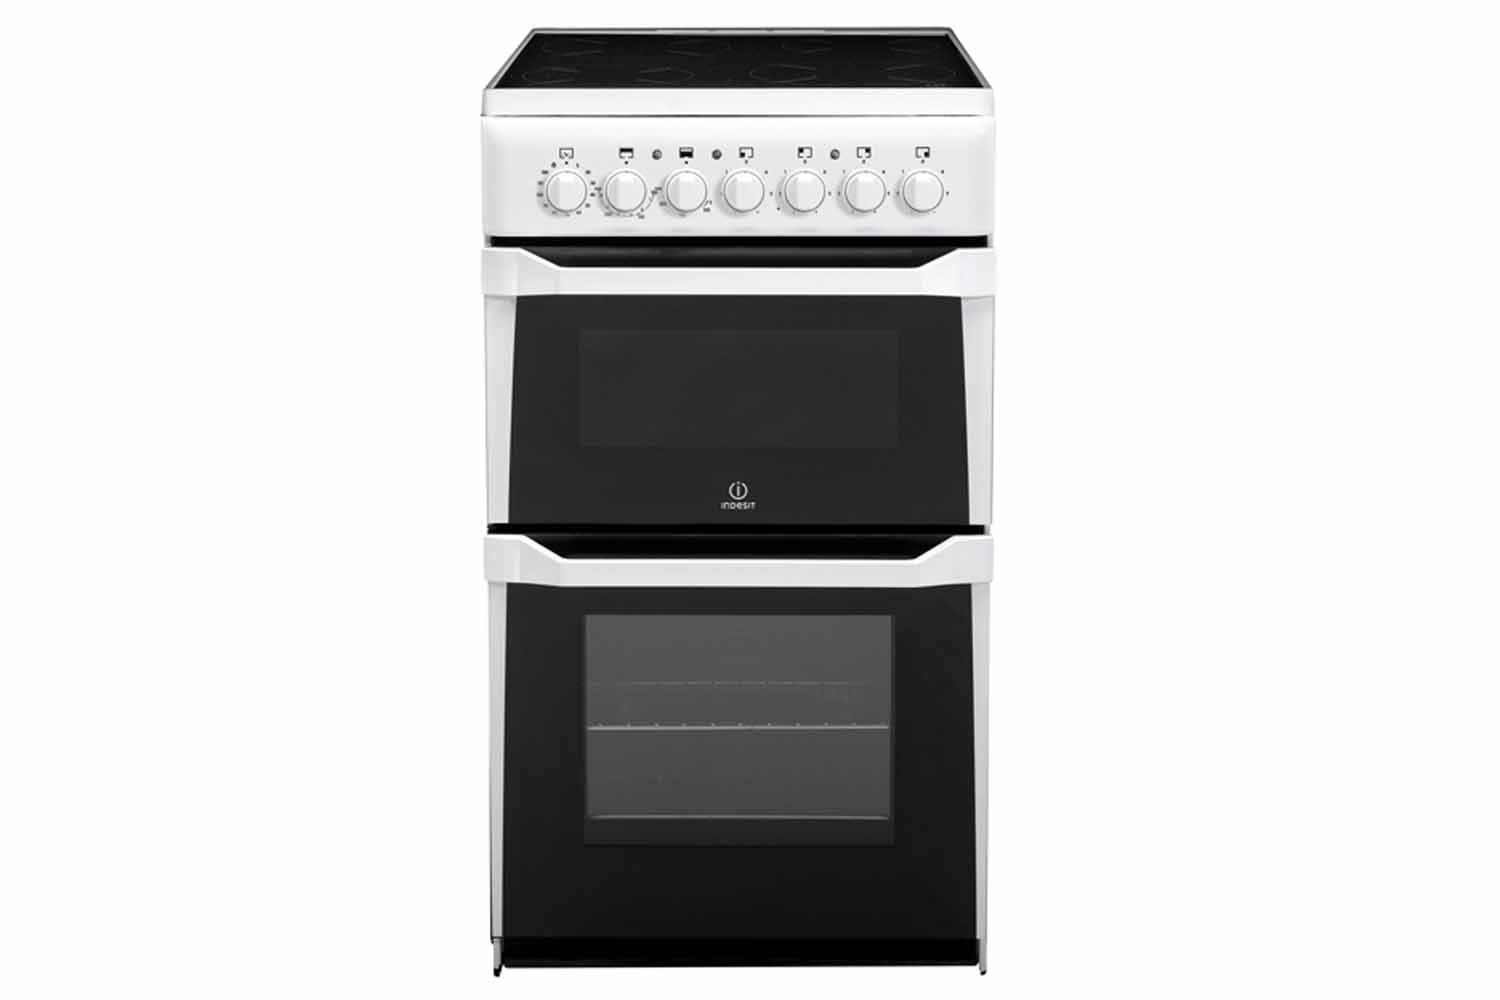 Indesit 50cm Electric Cooker IT50CW